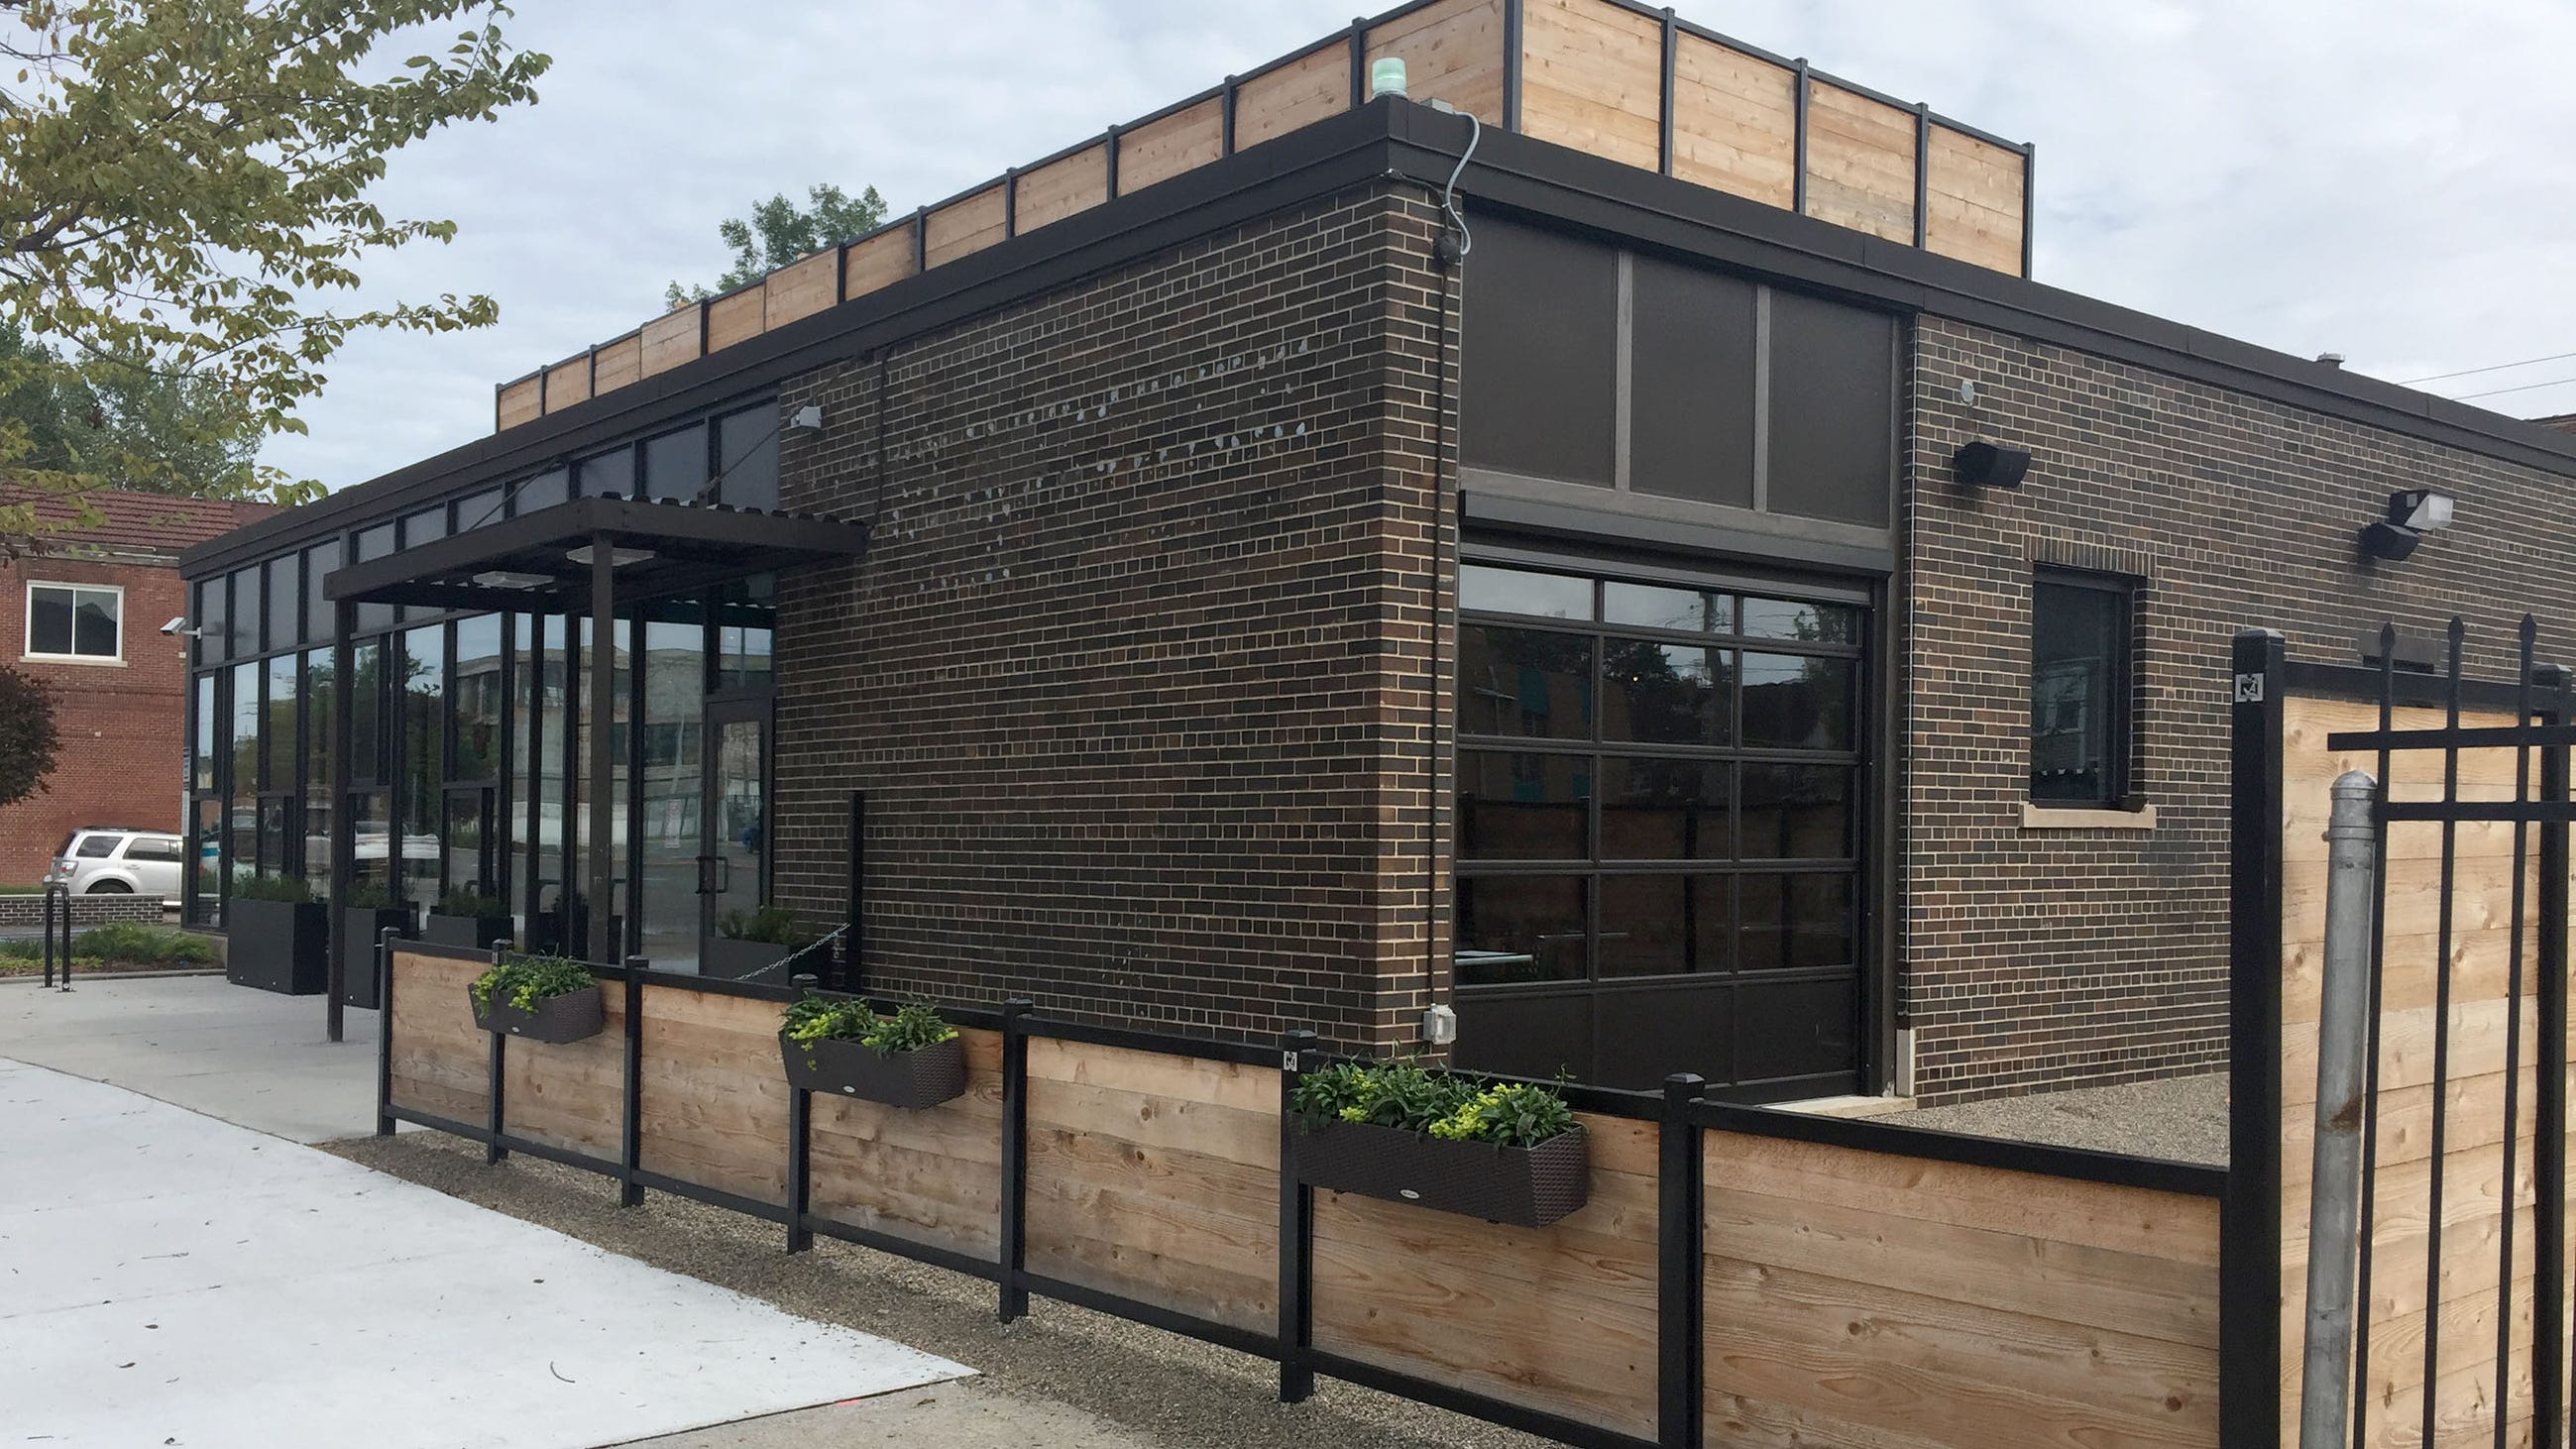 First restaurant in decades shows challenge of neighborhood's revival